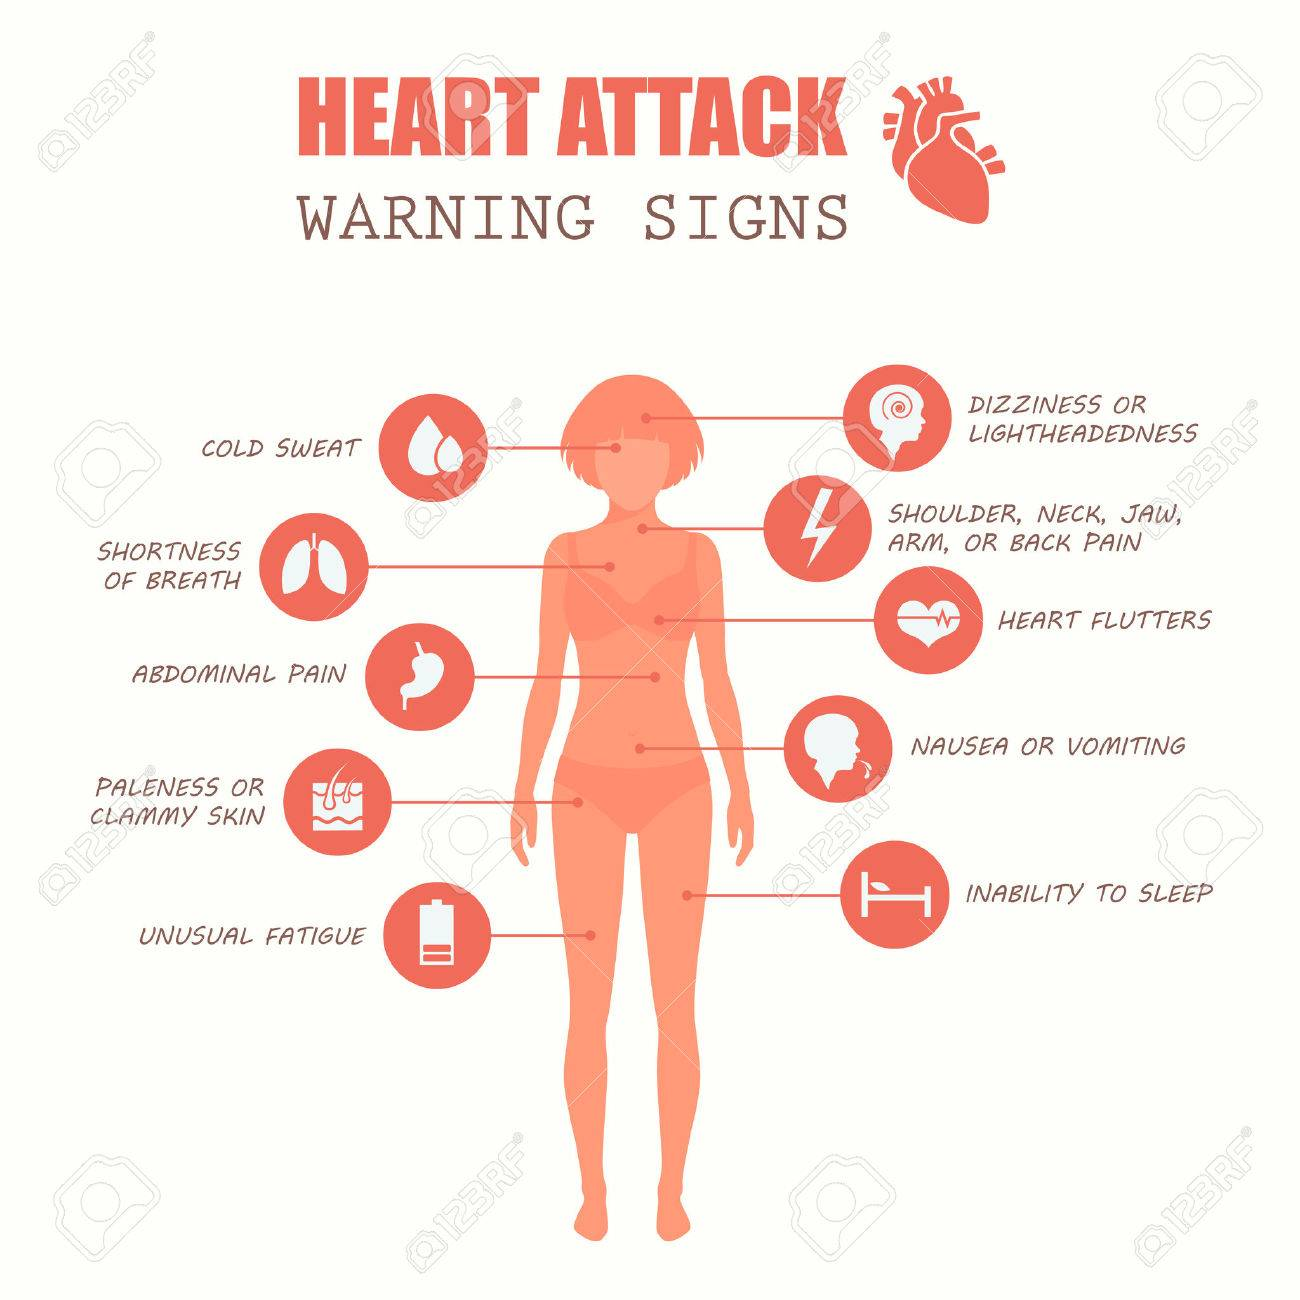 3276 greyhound stock vector illustration and royalty free heart attack woman disease symptoms medical illustration pooptronica